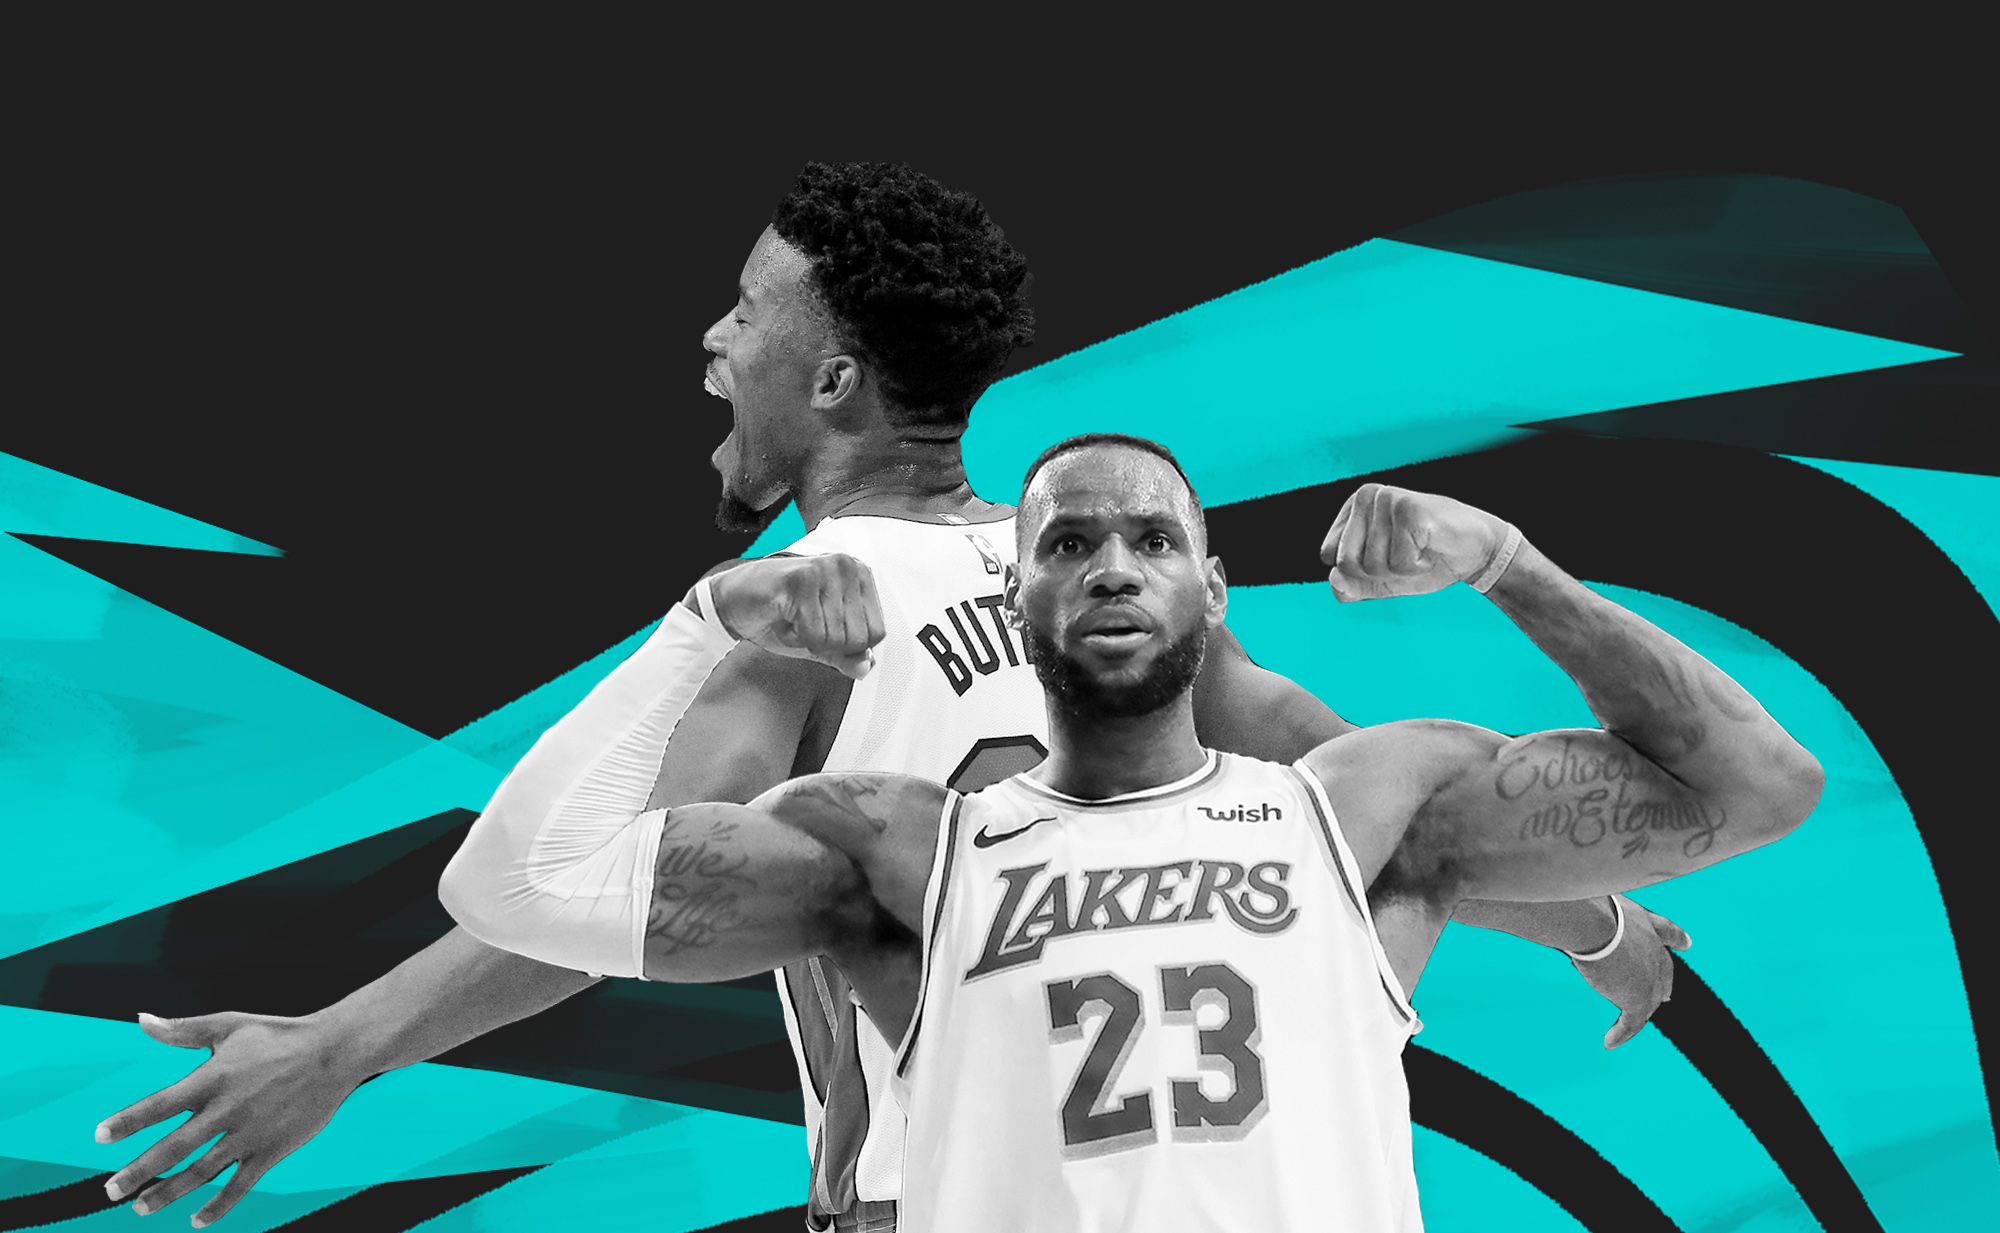 Black-and-white collage of LeBron James flexing and Jimmy Butler celebrating